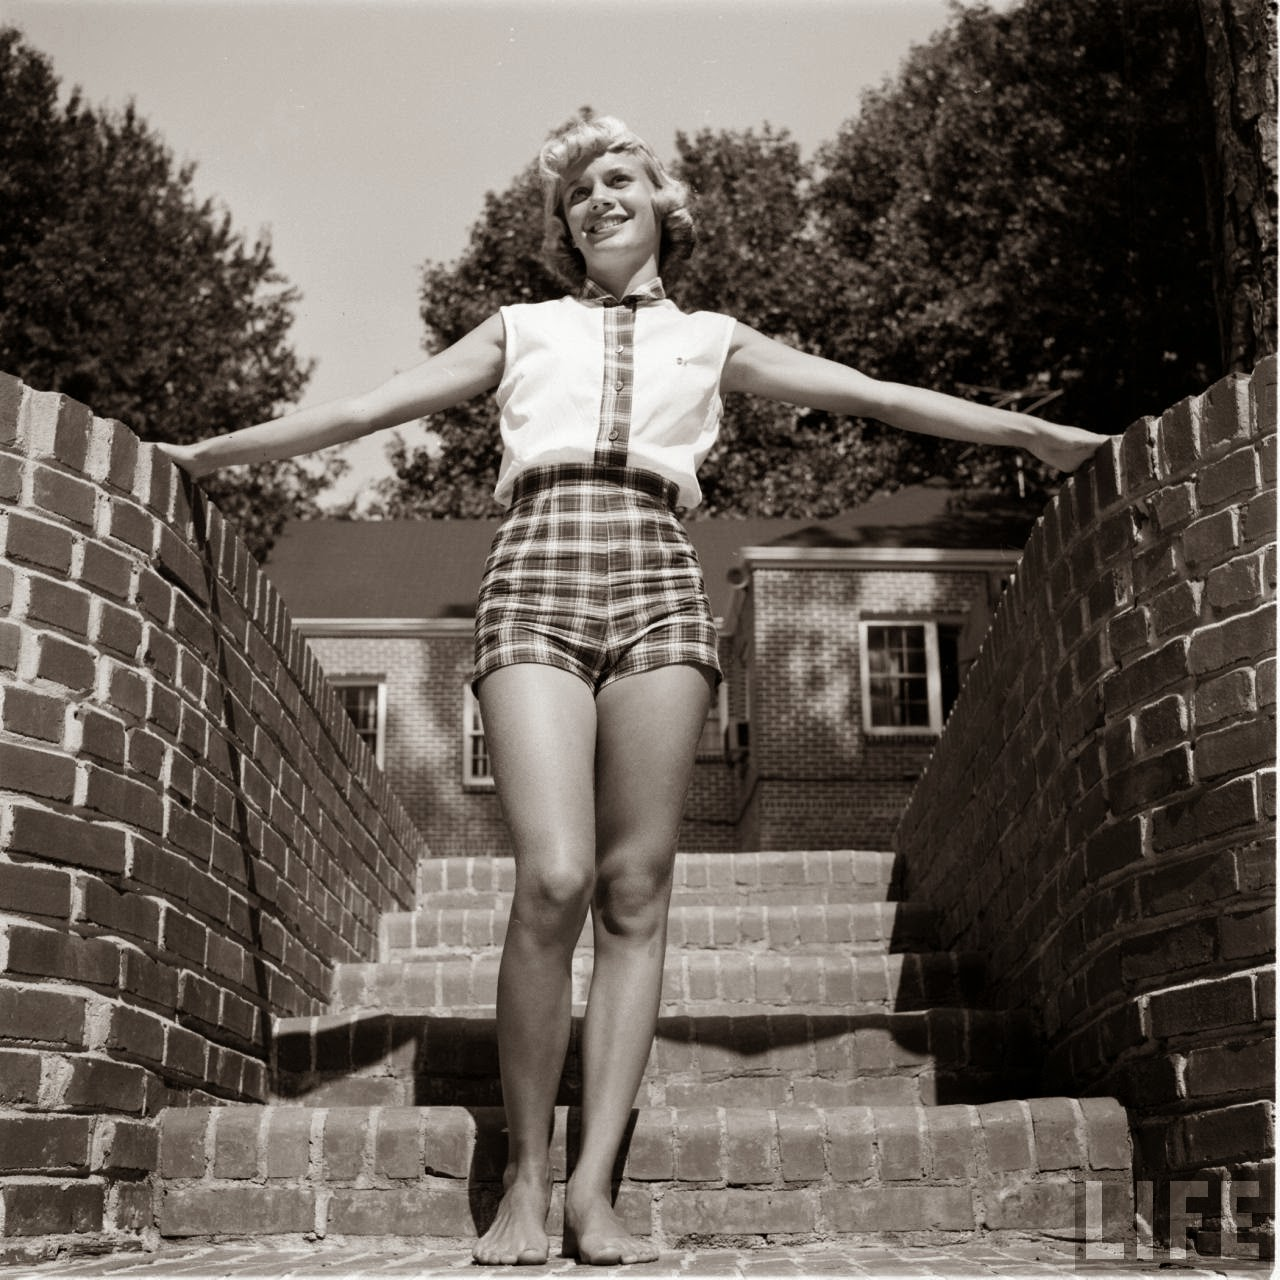 Short Shorts in the 1950's (18)